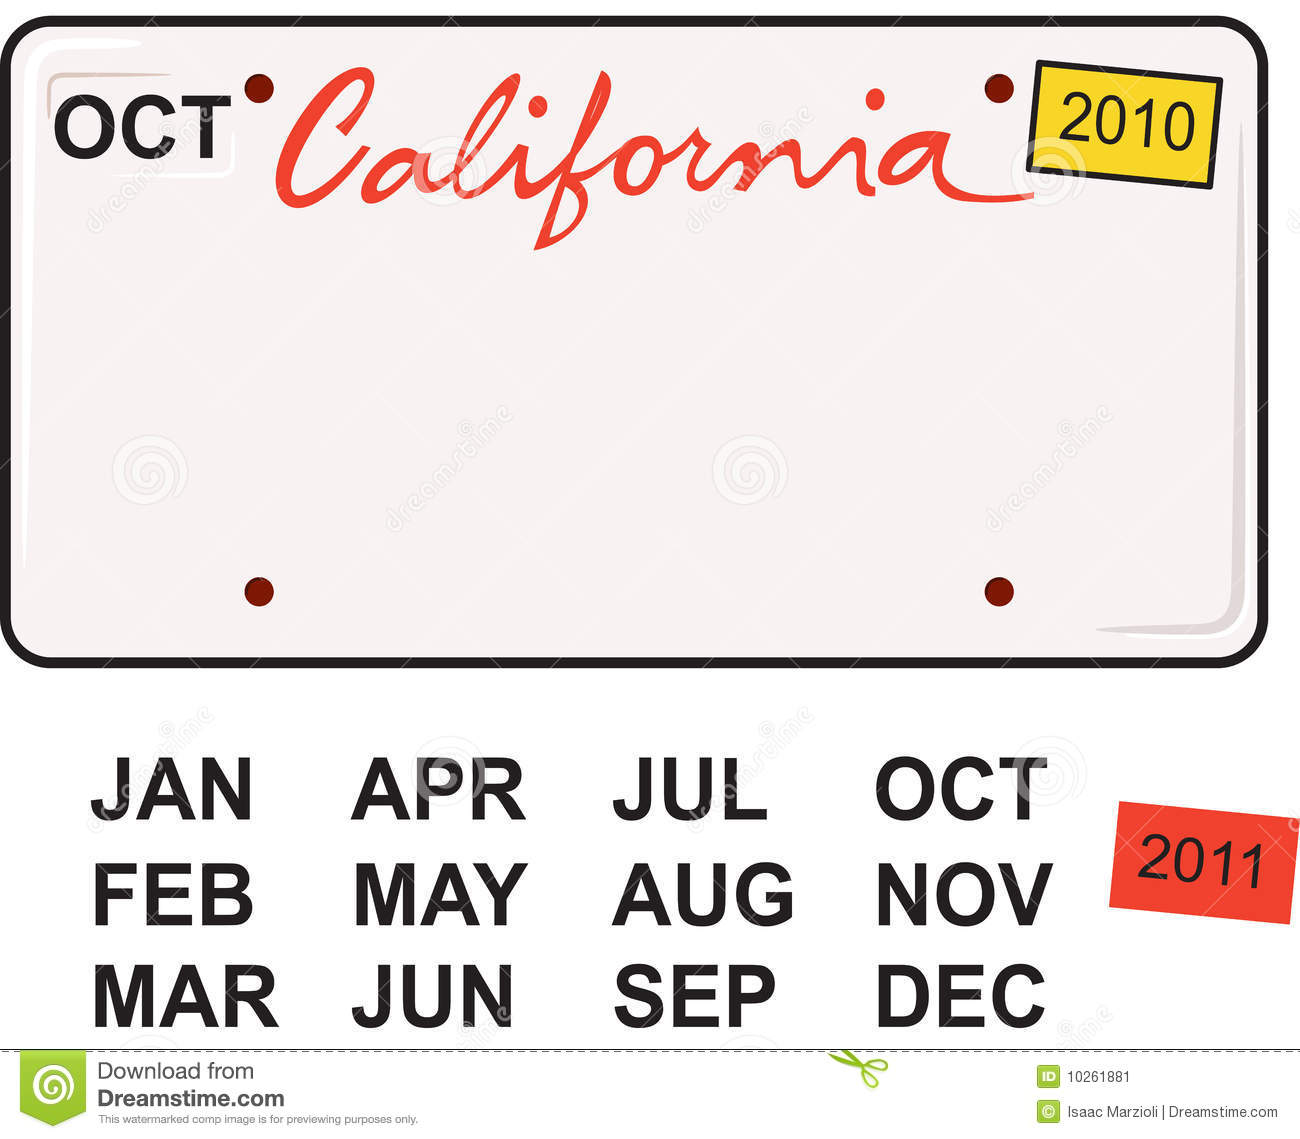 California License Plate Stock Image